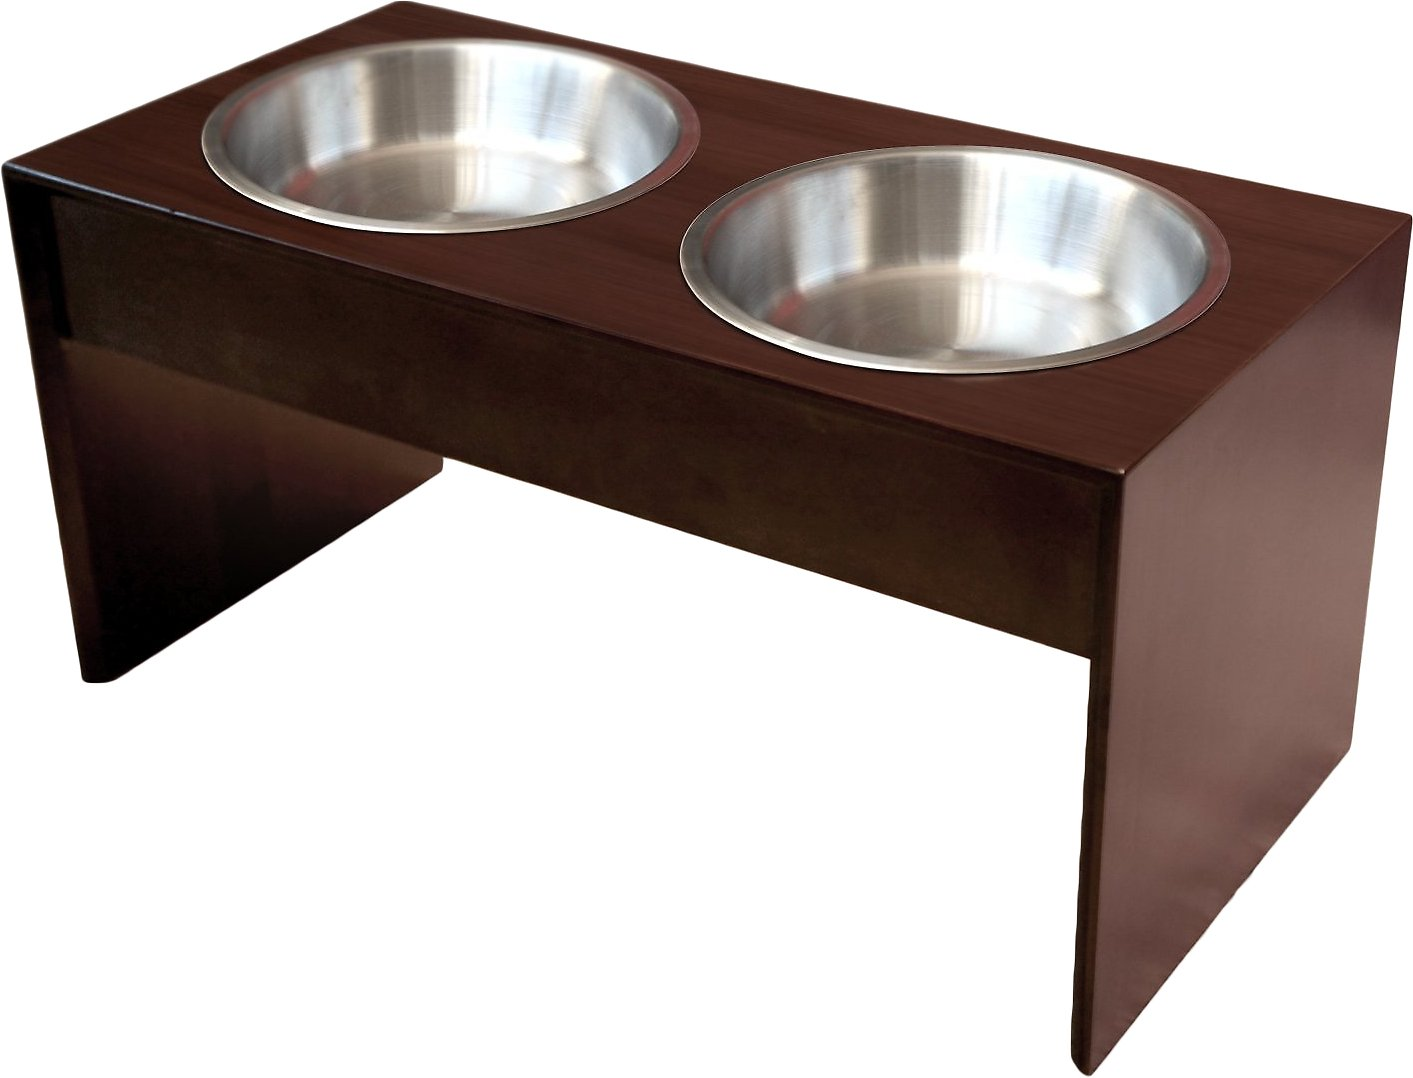 Elevated Dog Bowls | Dog Waterers | Food Dispenser for Dogs